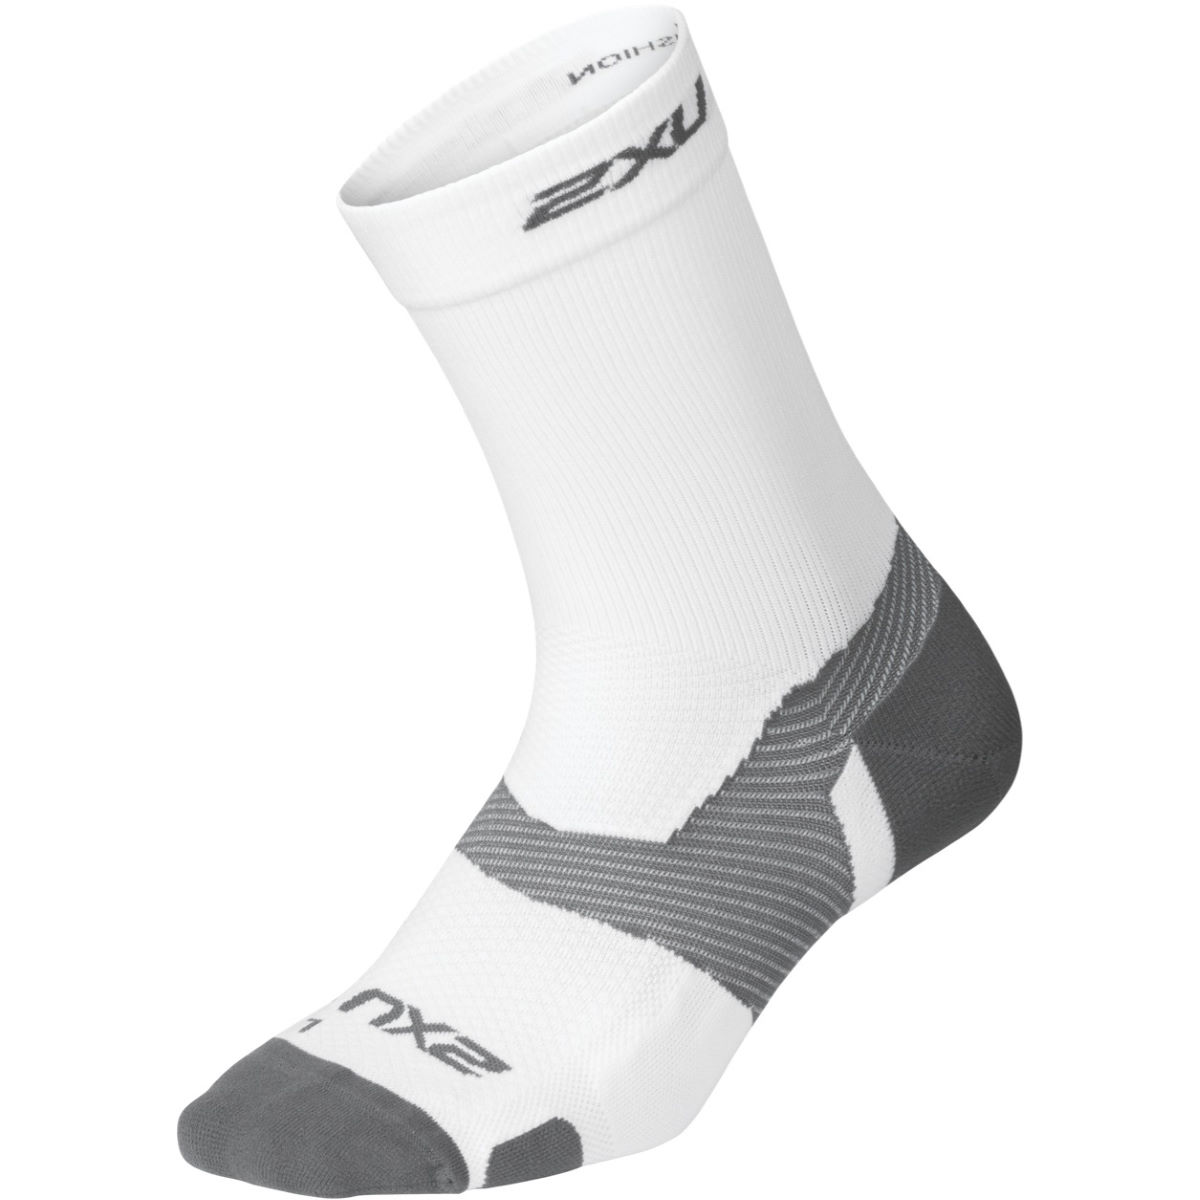 Chaussettes 2XU Vectr Light Cushion Crew (blanches) - S Blanc/Gris